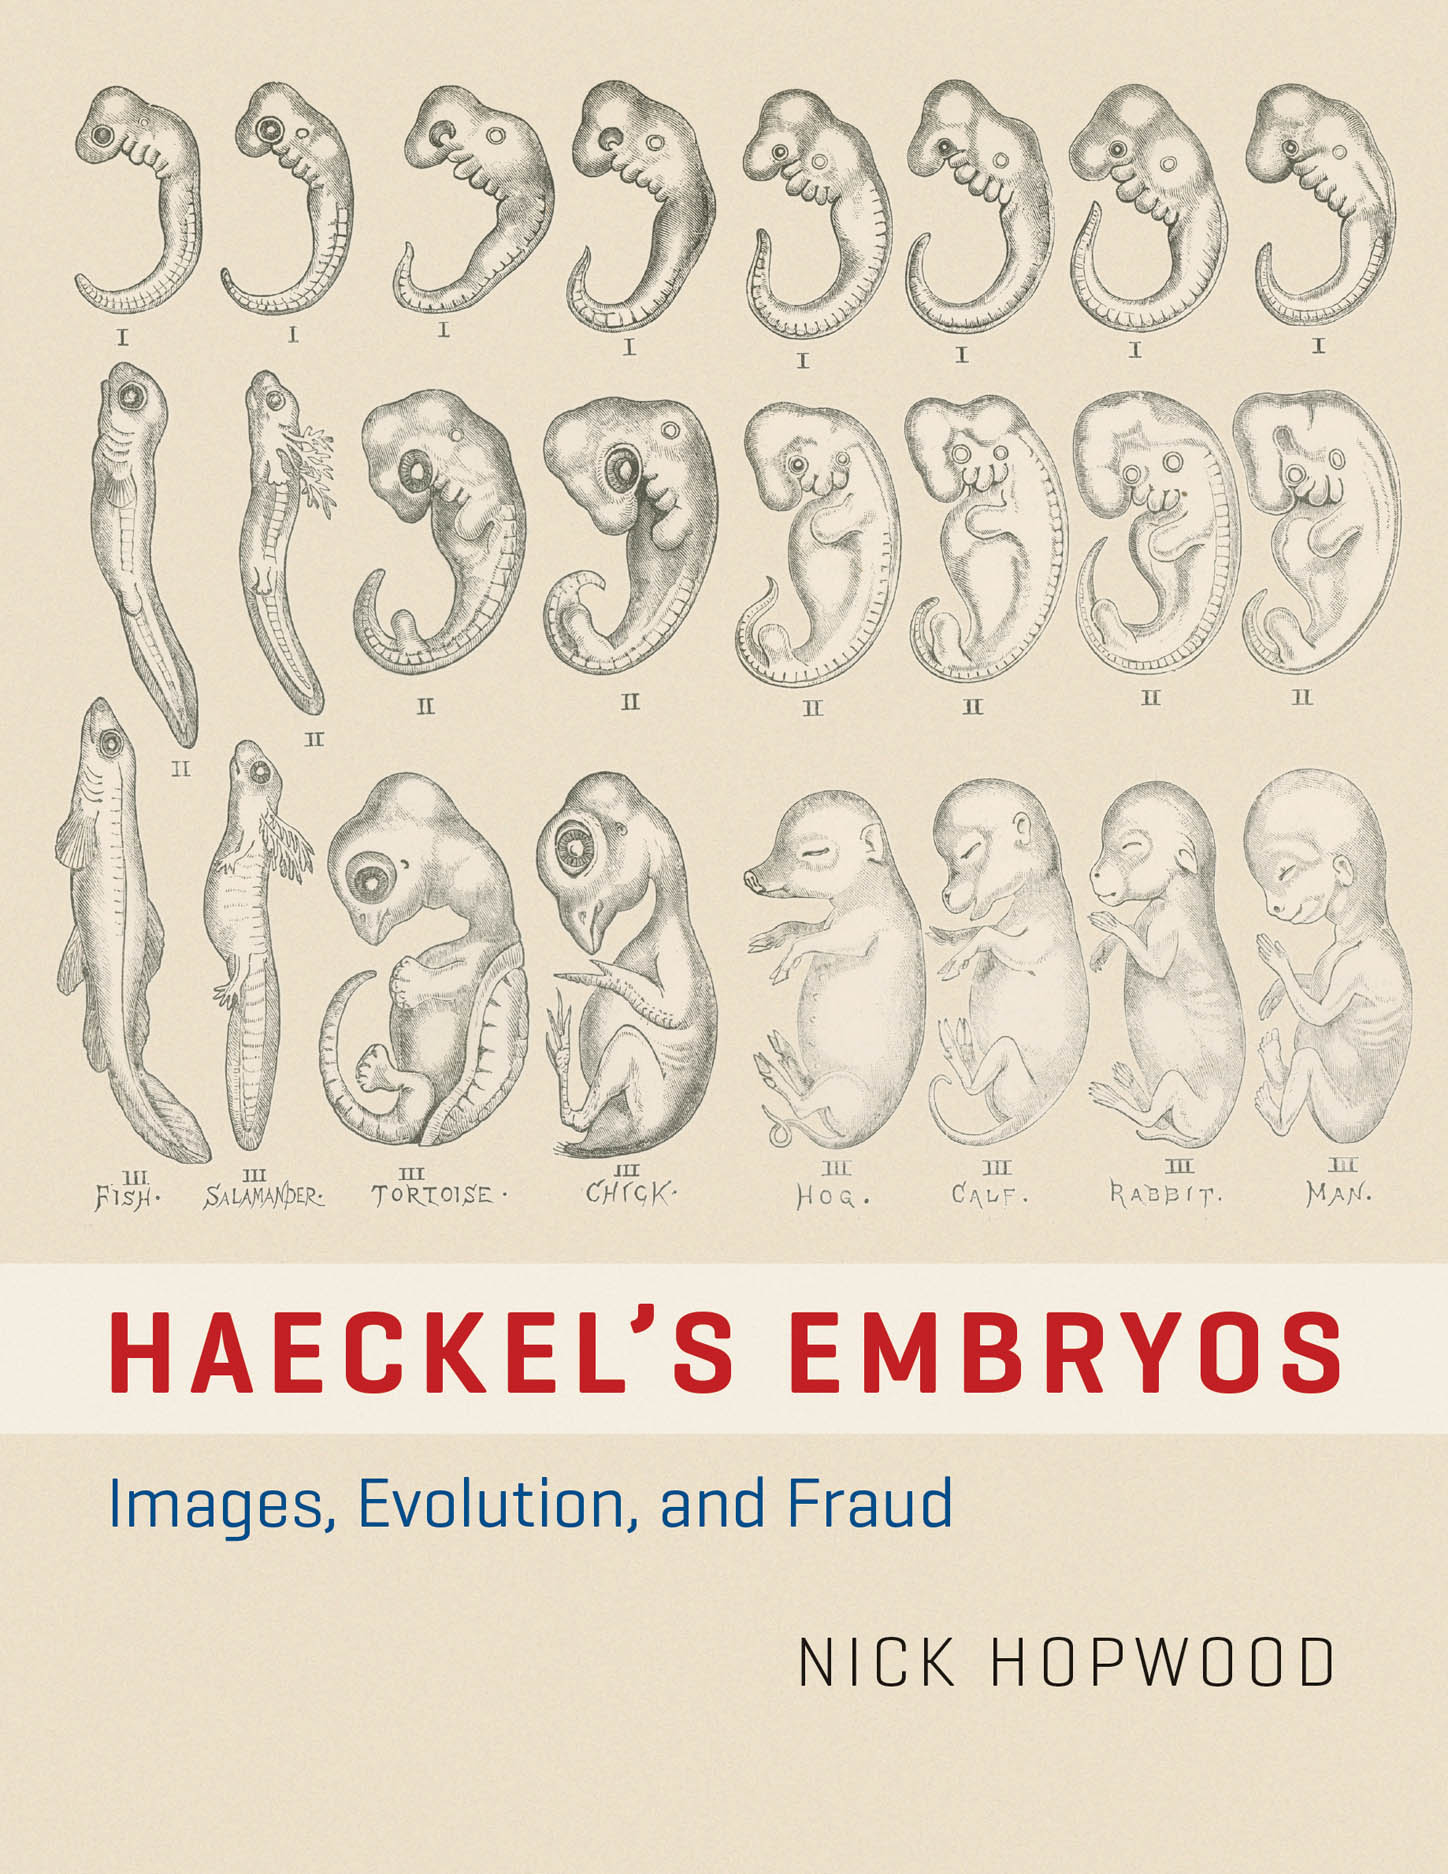 Haeckel's Embryos: Images, Evolution, and Fraud